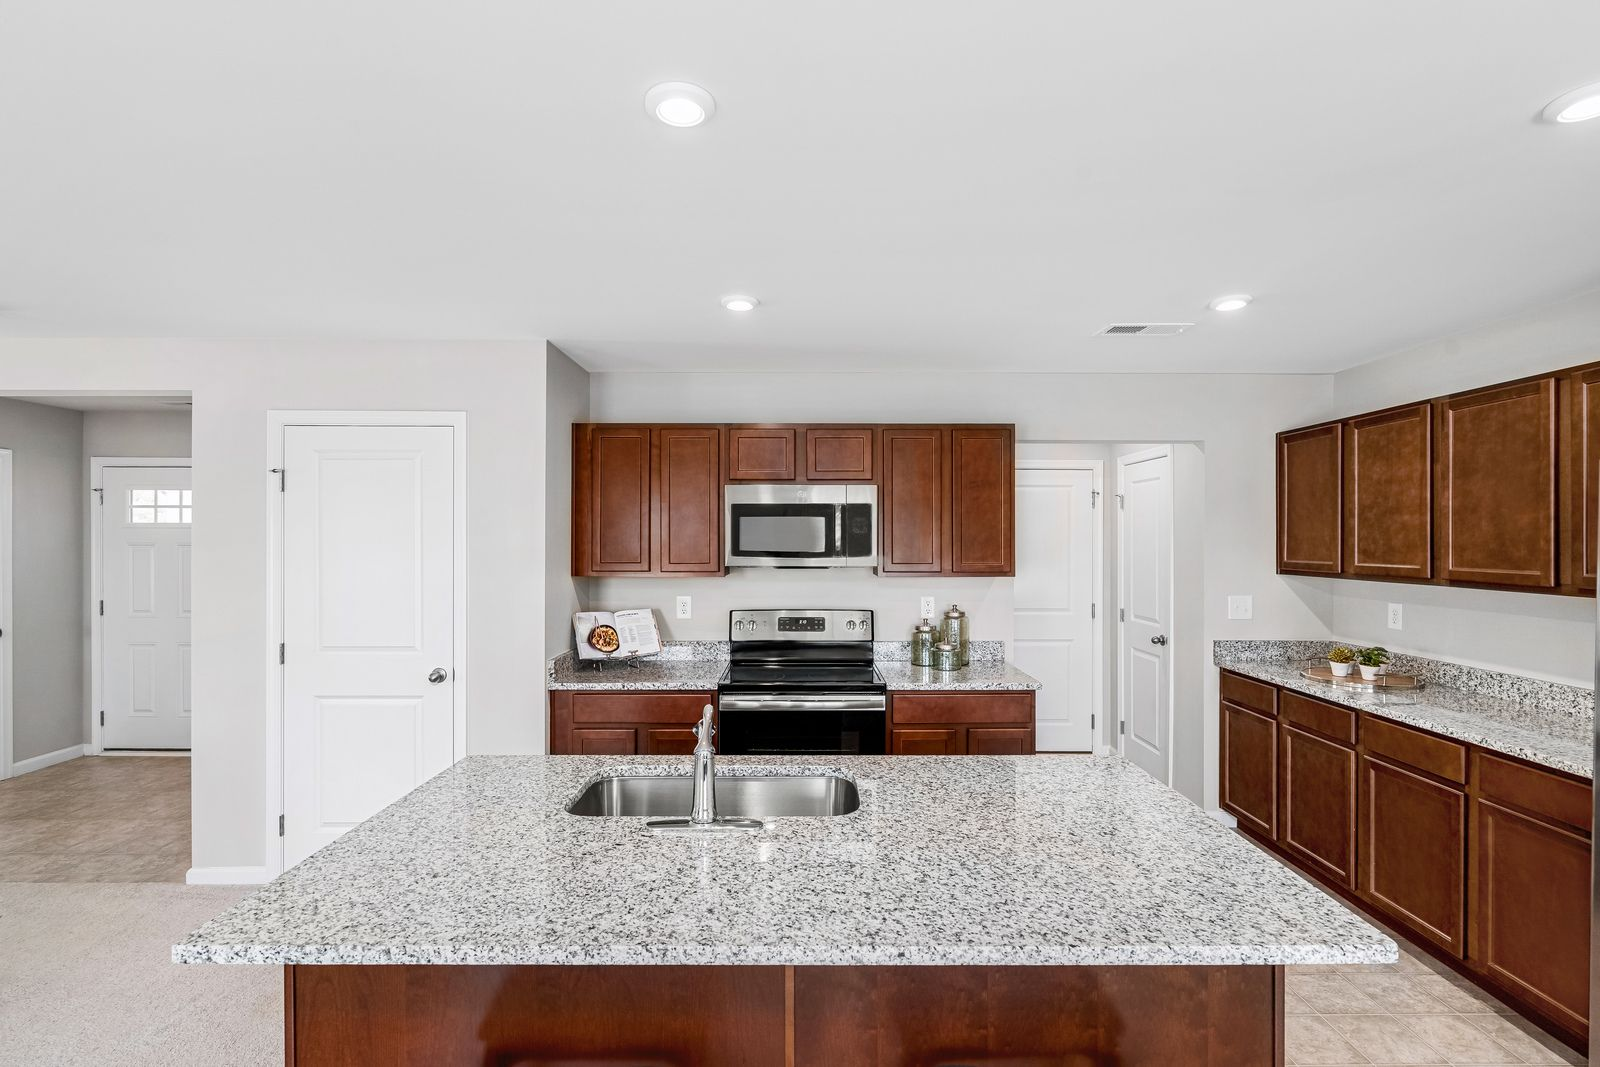 Kitchen featured in the Lily By Ryan Homes in Charlotte, NC